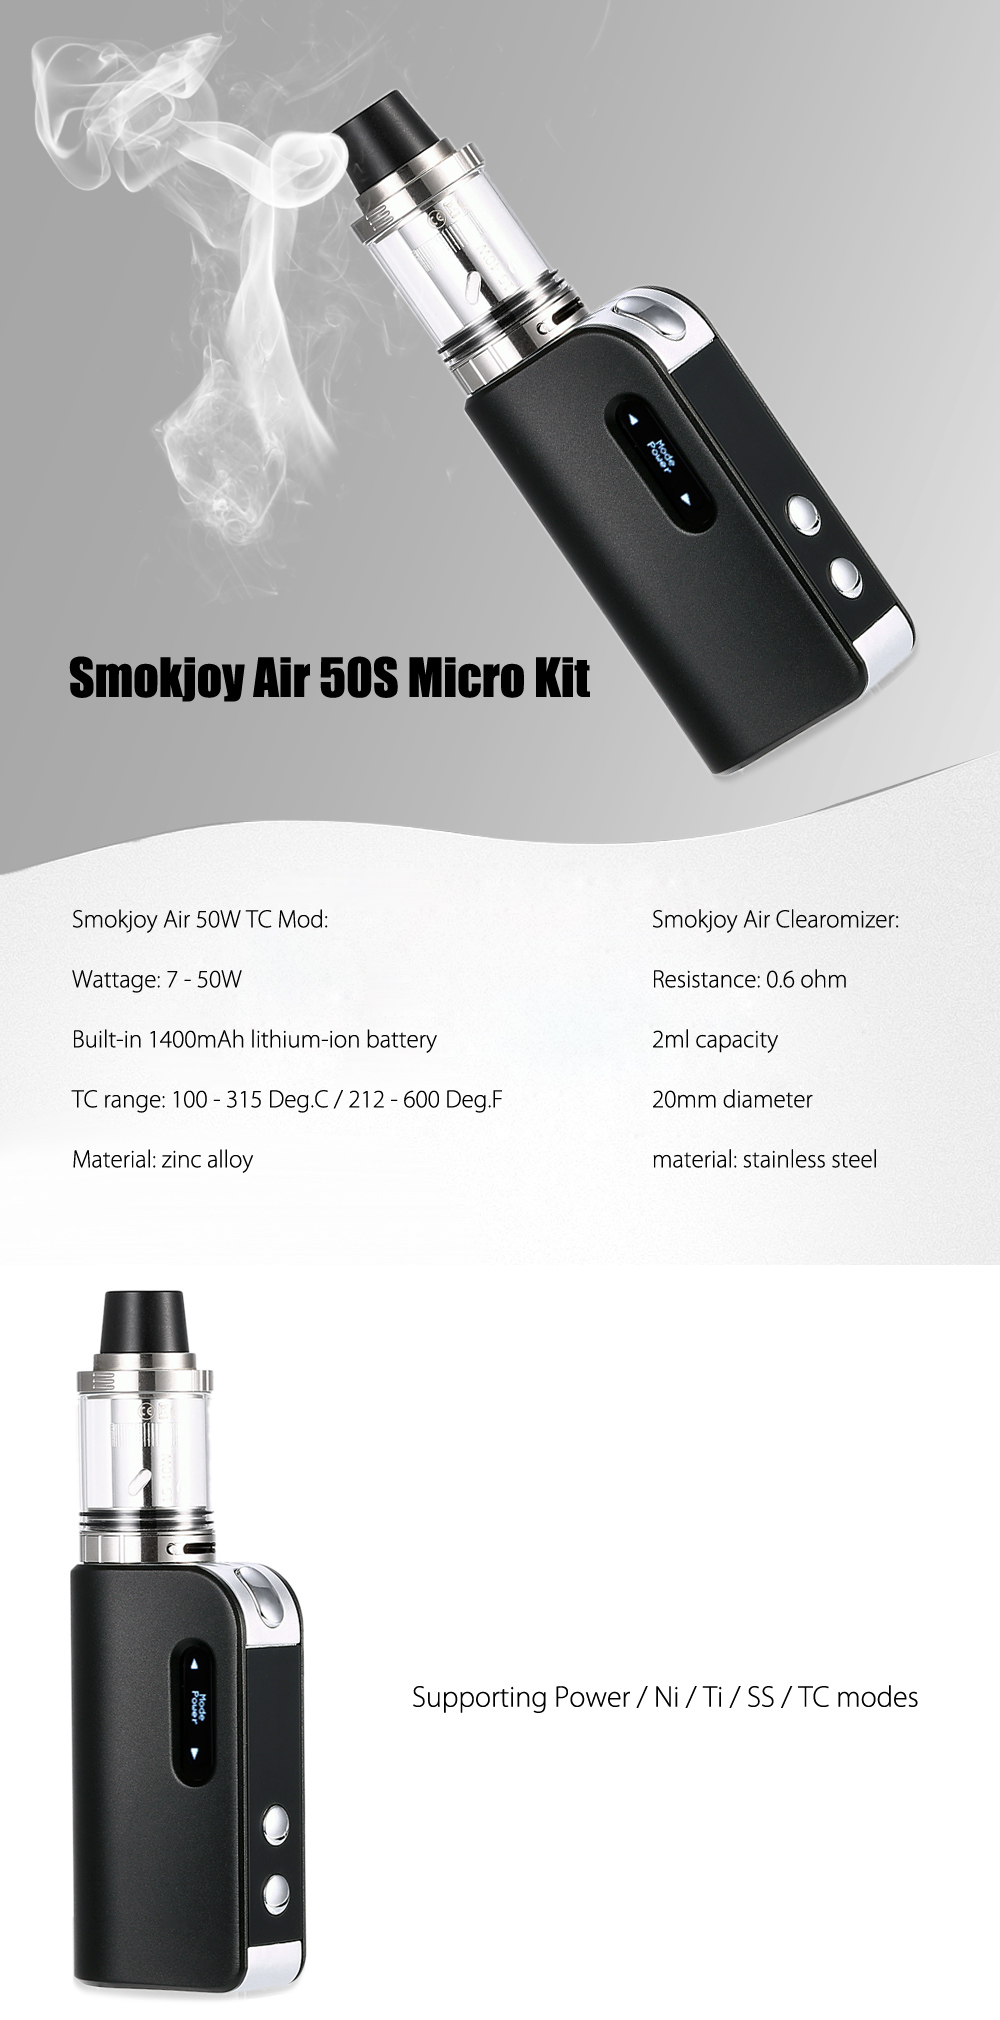 Original Smokjoy Air 50S Micro Kit with  7 - 50W / Built-in 1400mAh Battery / 100 - 315C / 212 - 600F / 0.6 ohm / Top Filling Clearomizer for E Cigarette